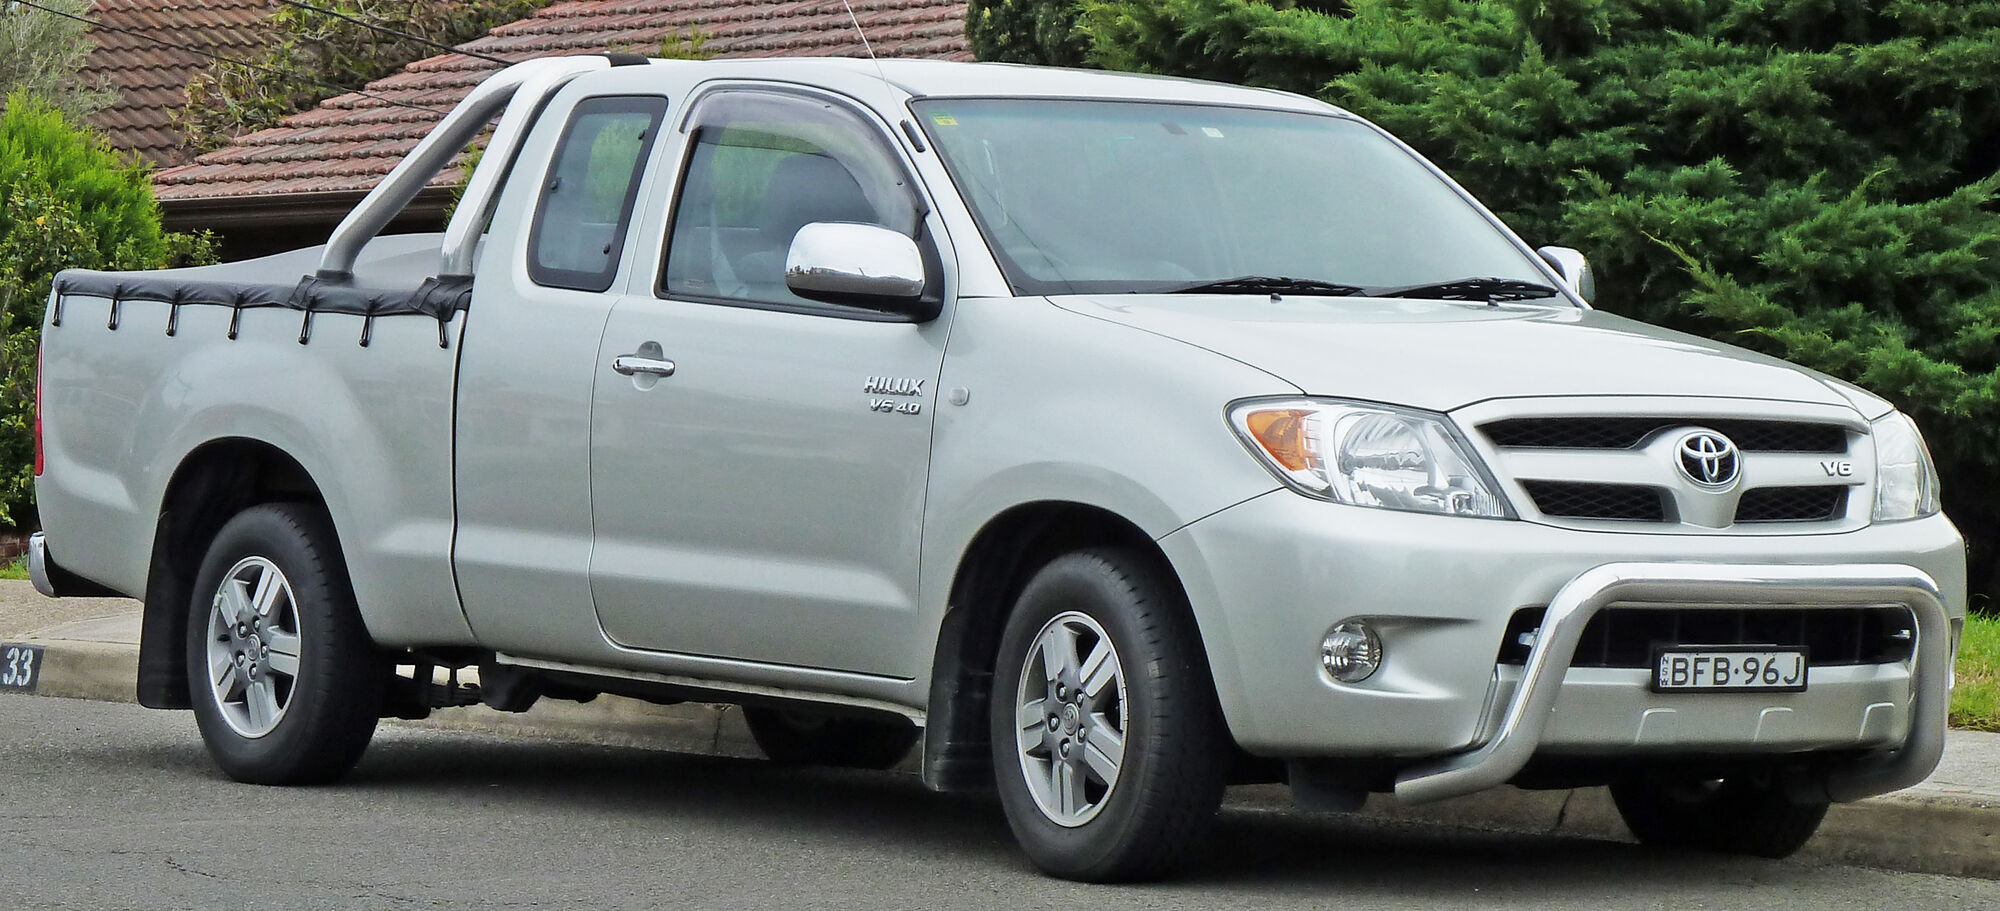 Toyota Hilux | Tractor & Construction Plant Wiki | FANDOM ...